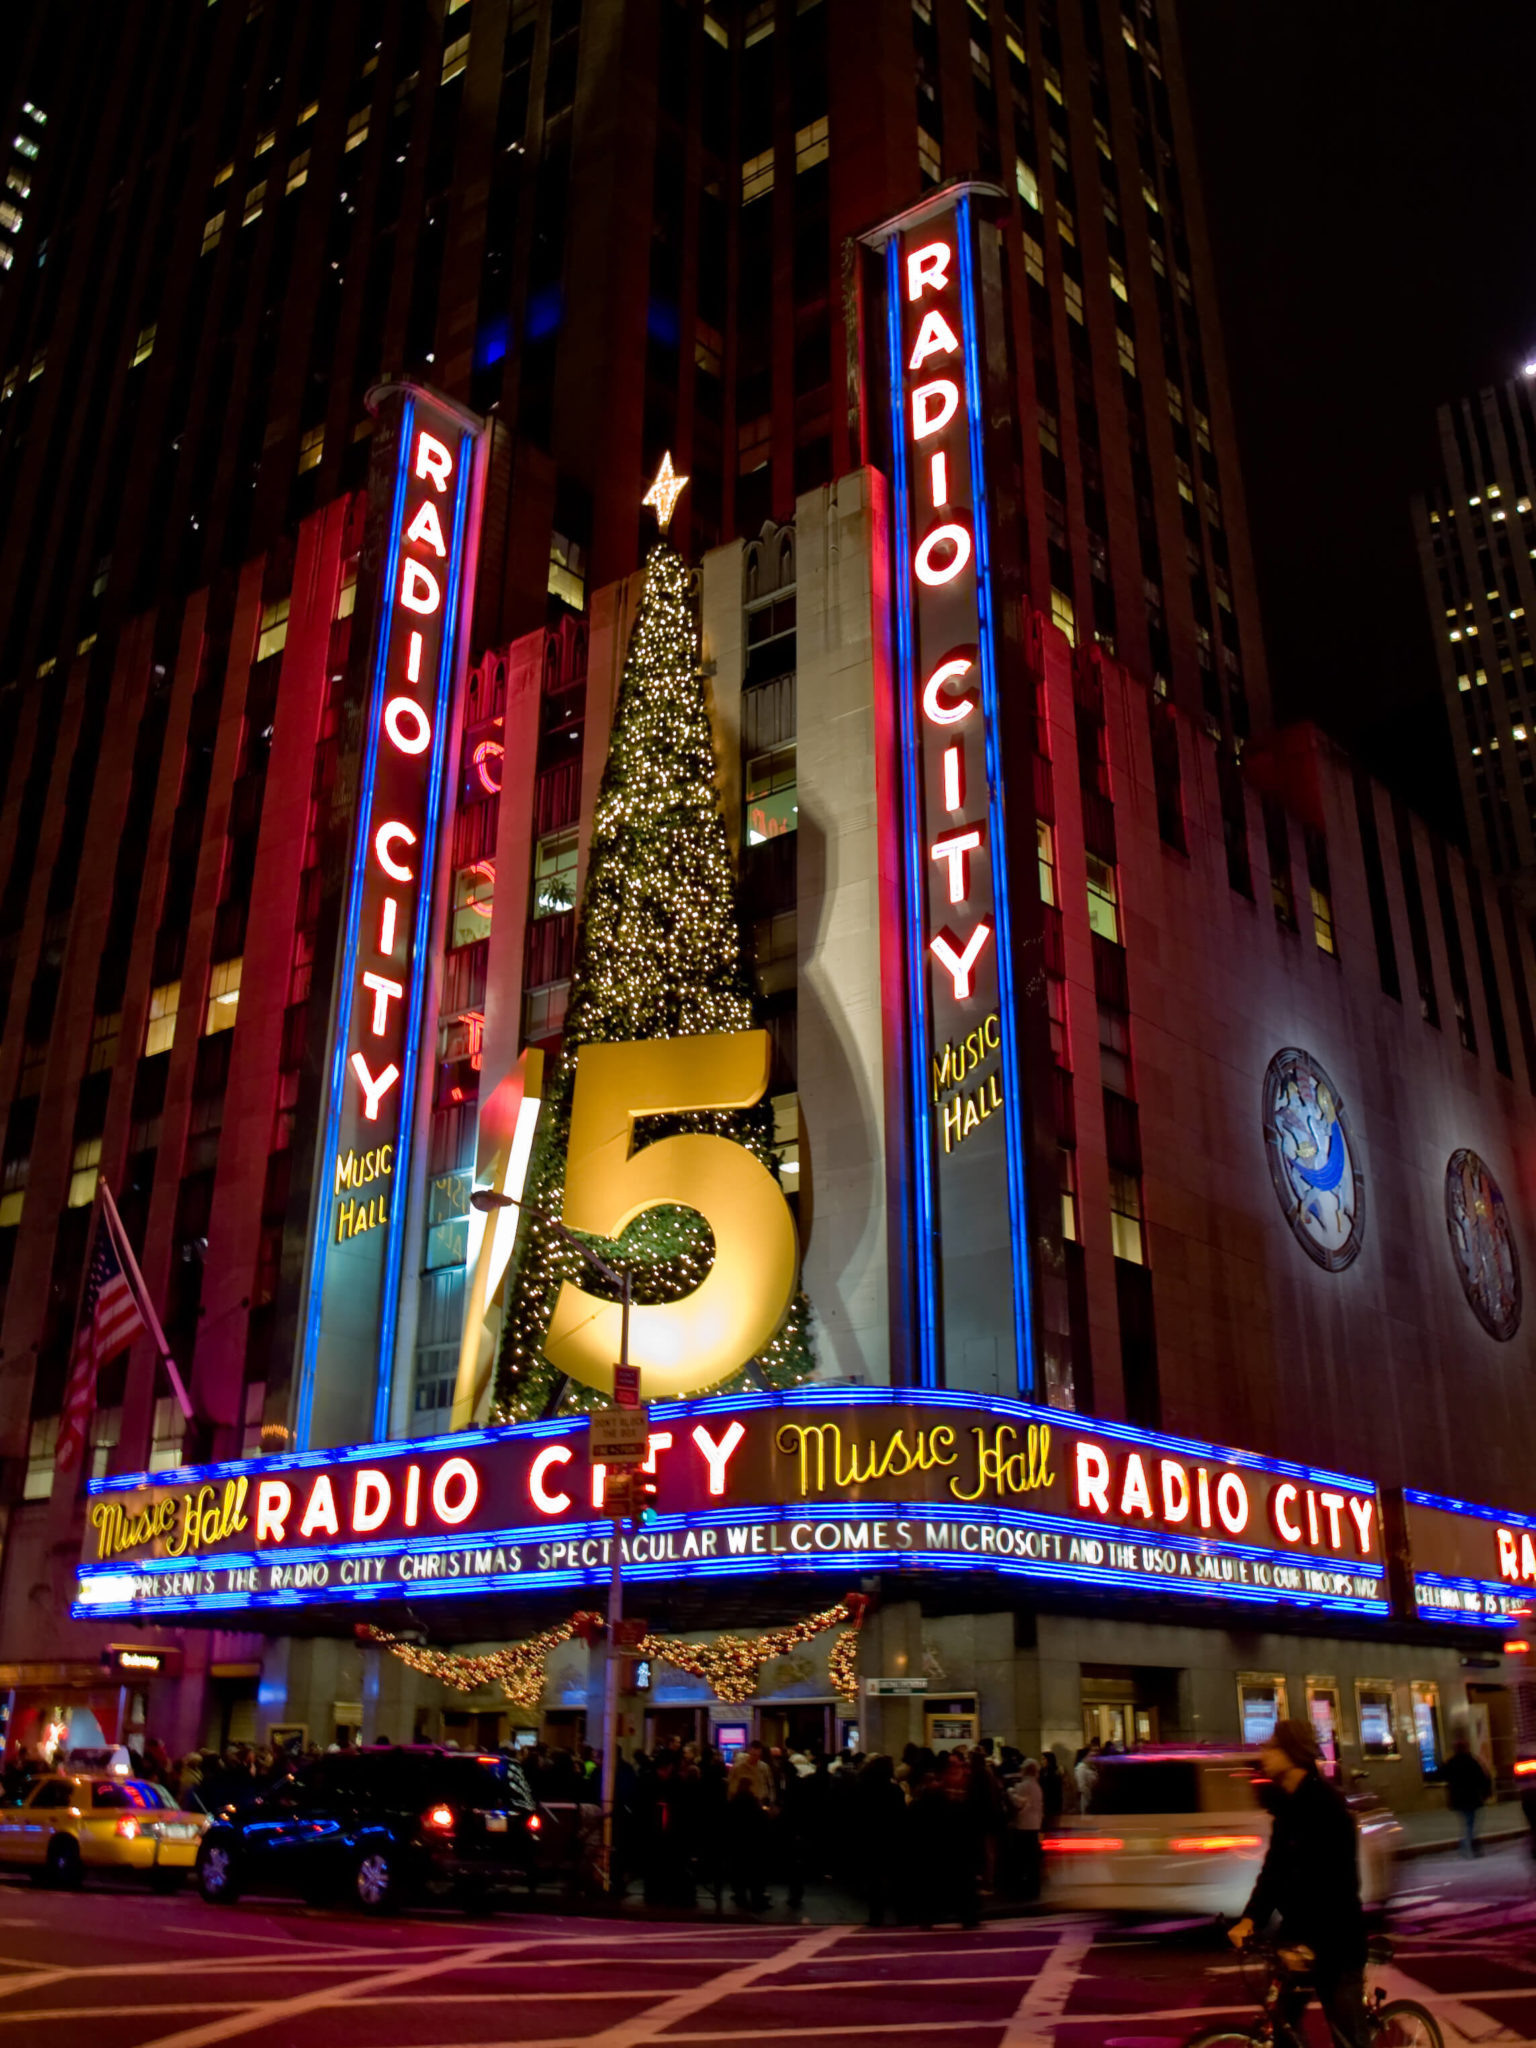 Stunning examples of terrazzo can be found in several lobbies of the Radio City Music Hall in New York City.